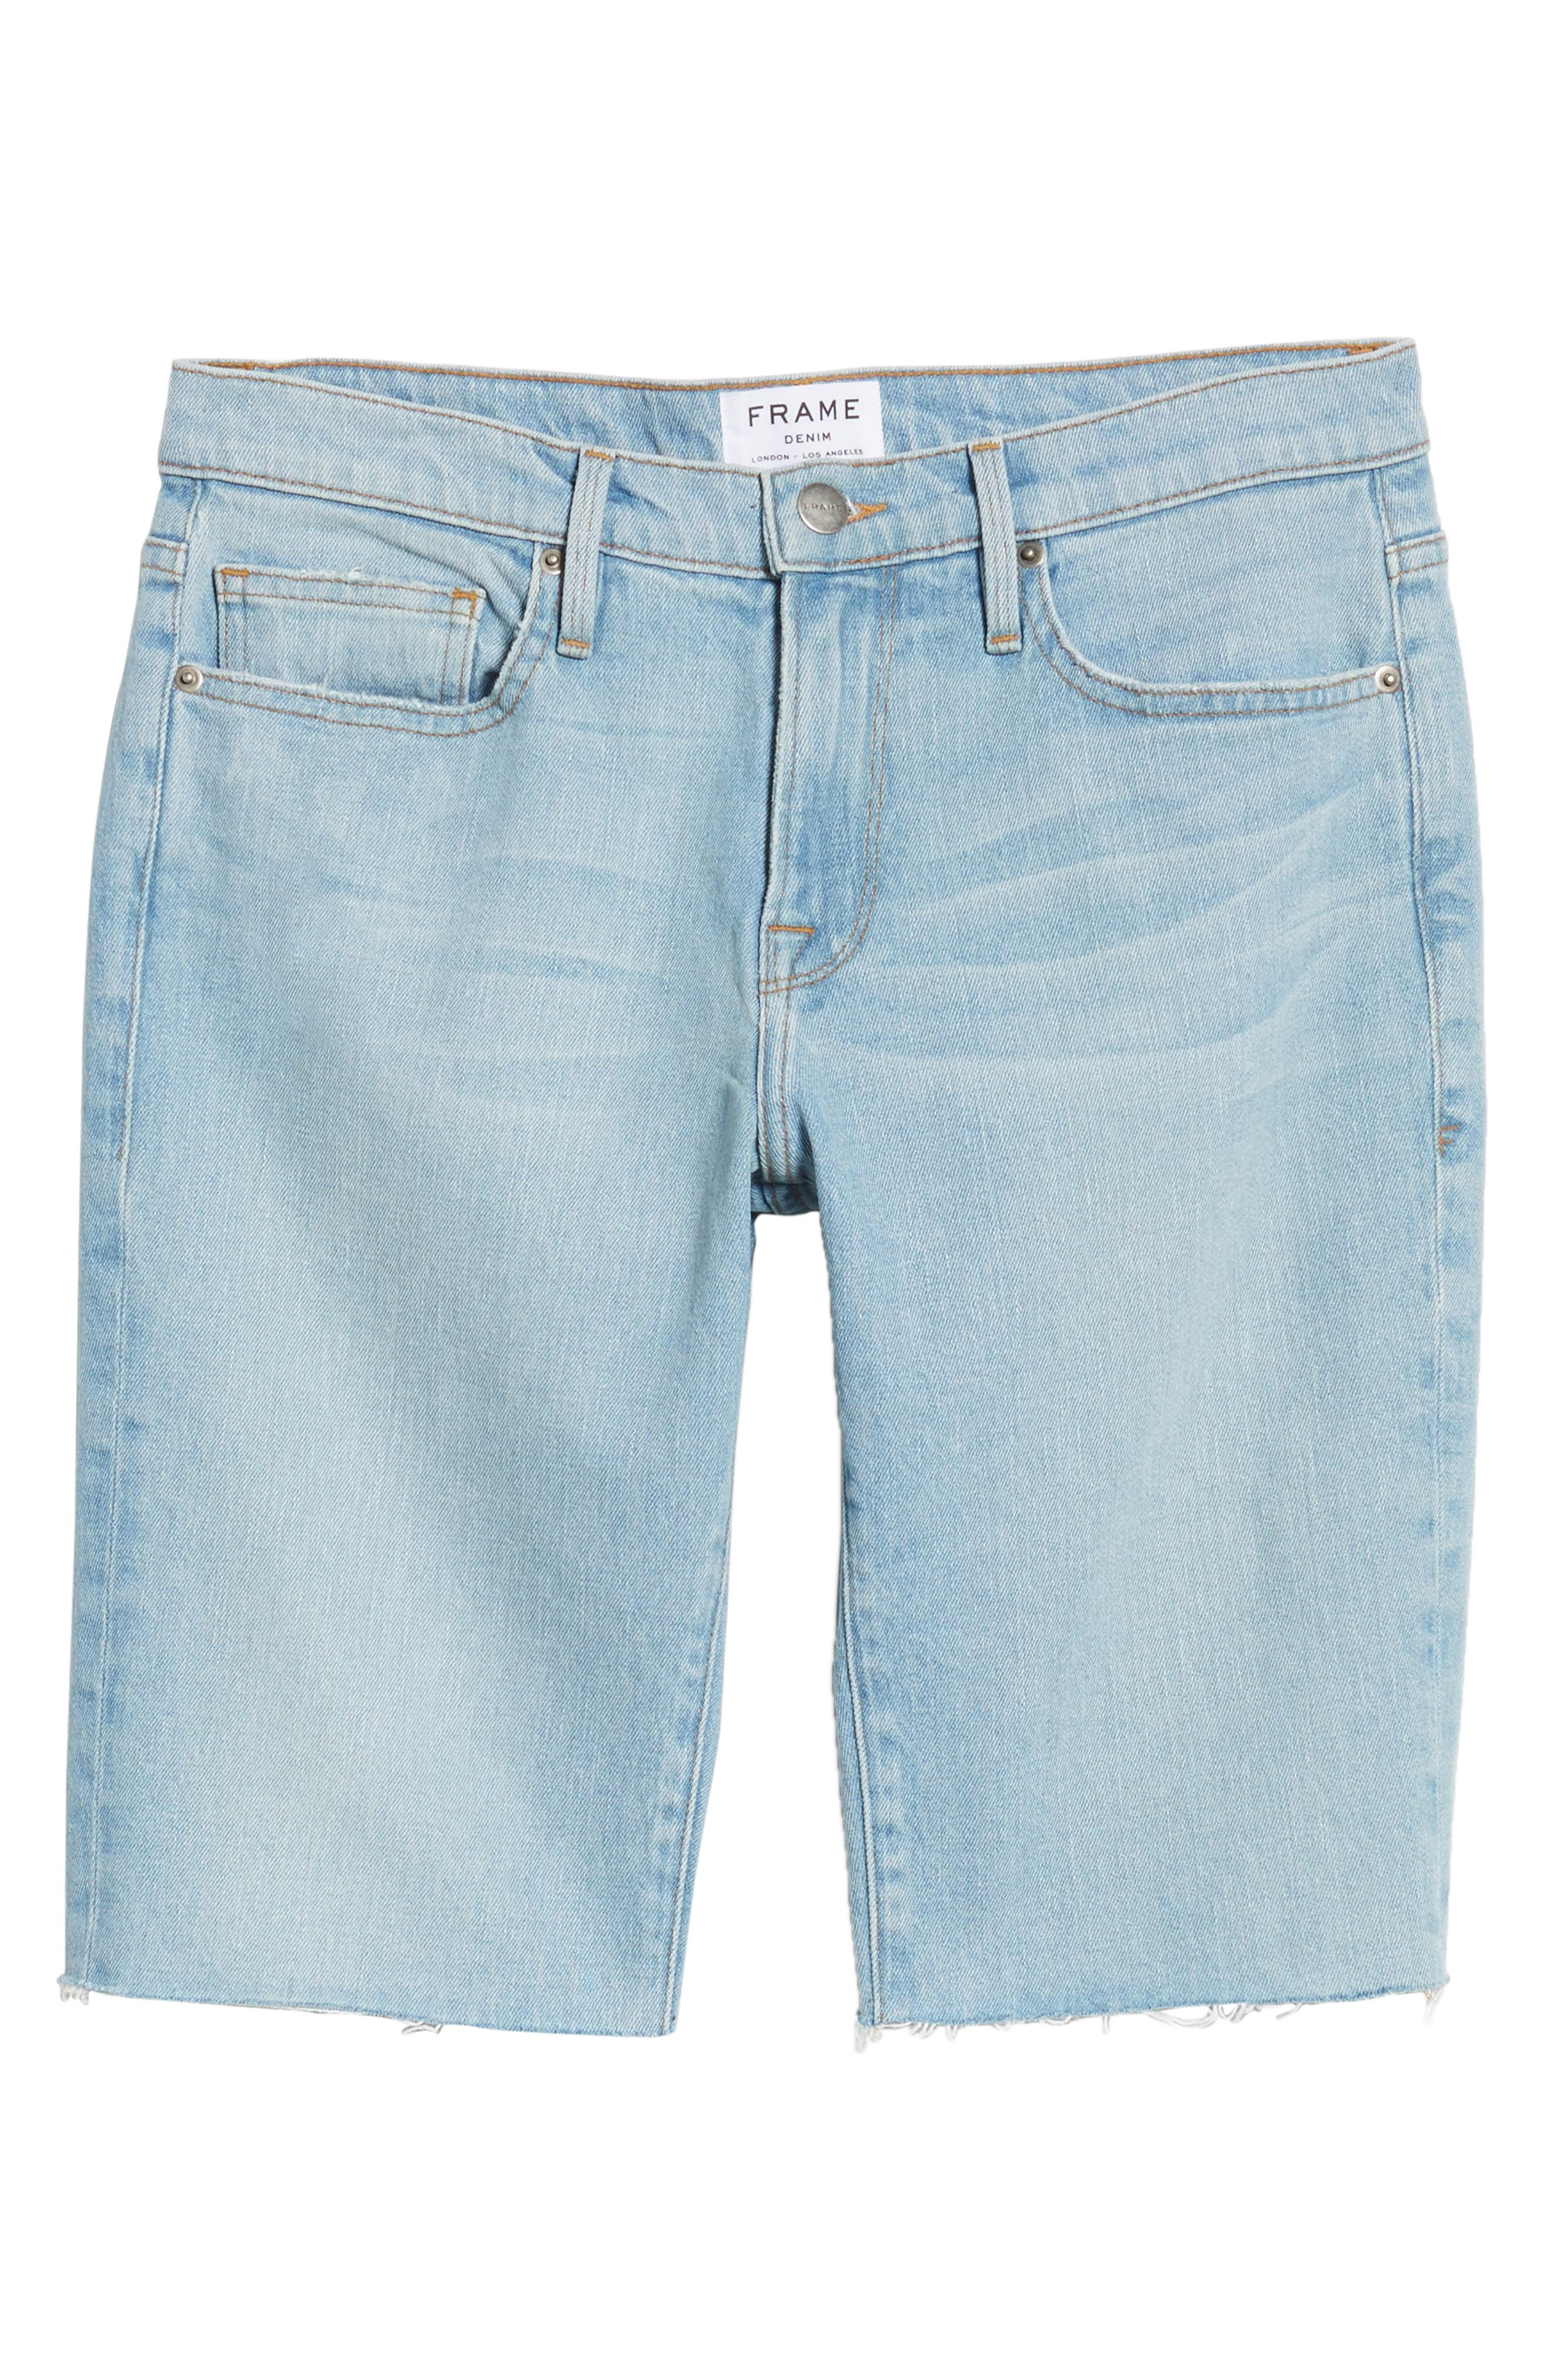 L'Homme Cutoff Denim Shorts,                             Alternate thumbnail 6, color,                             Crosby